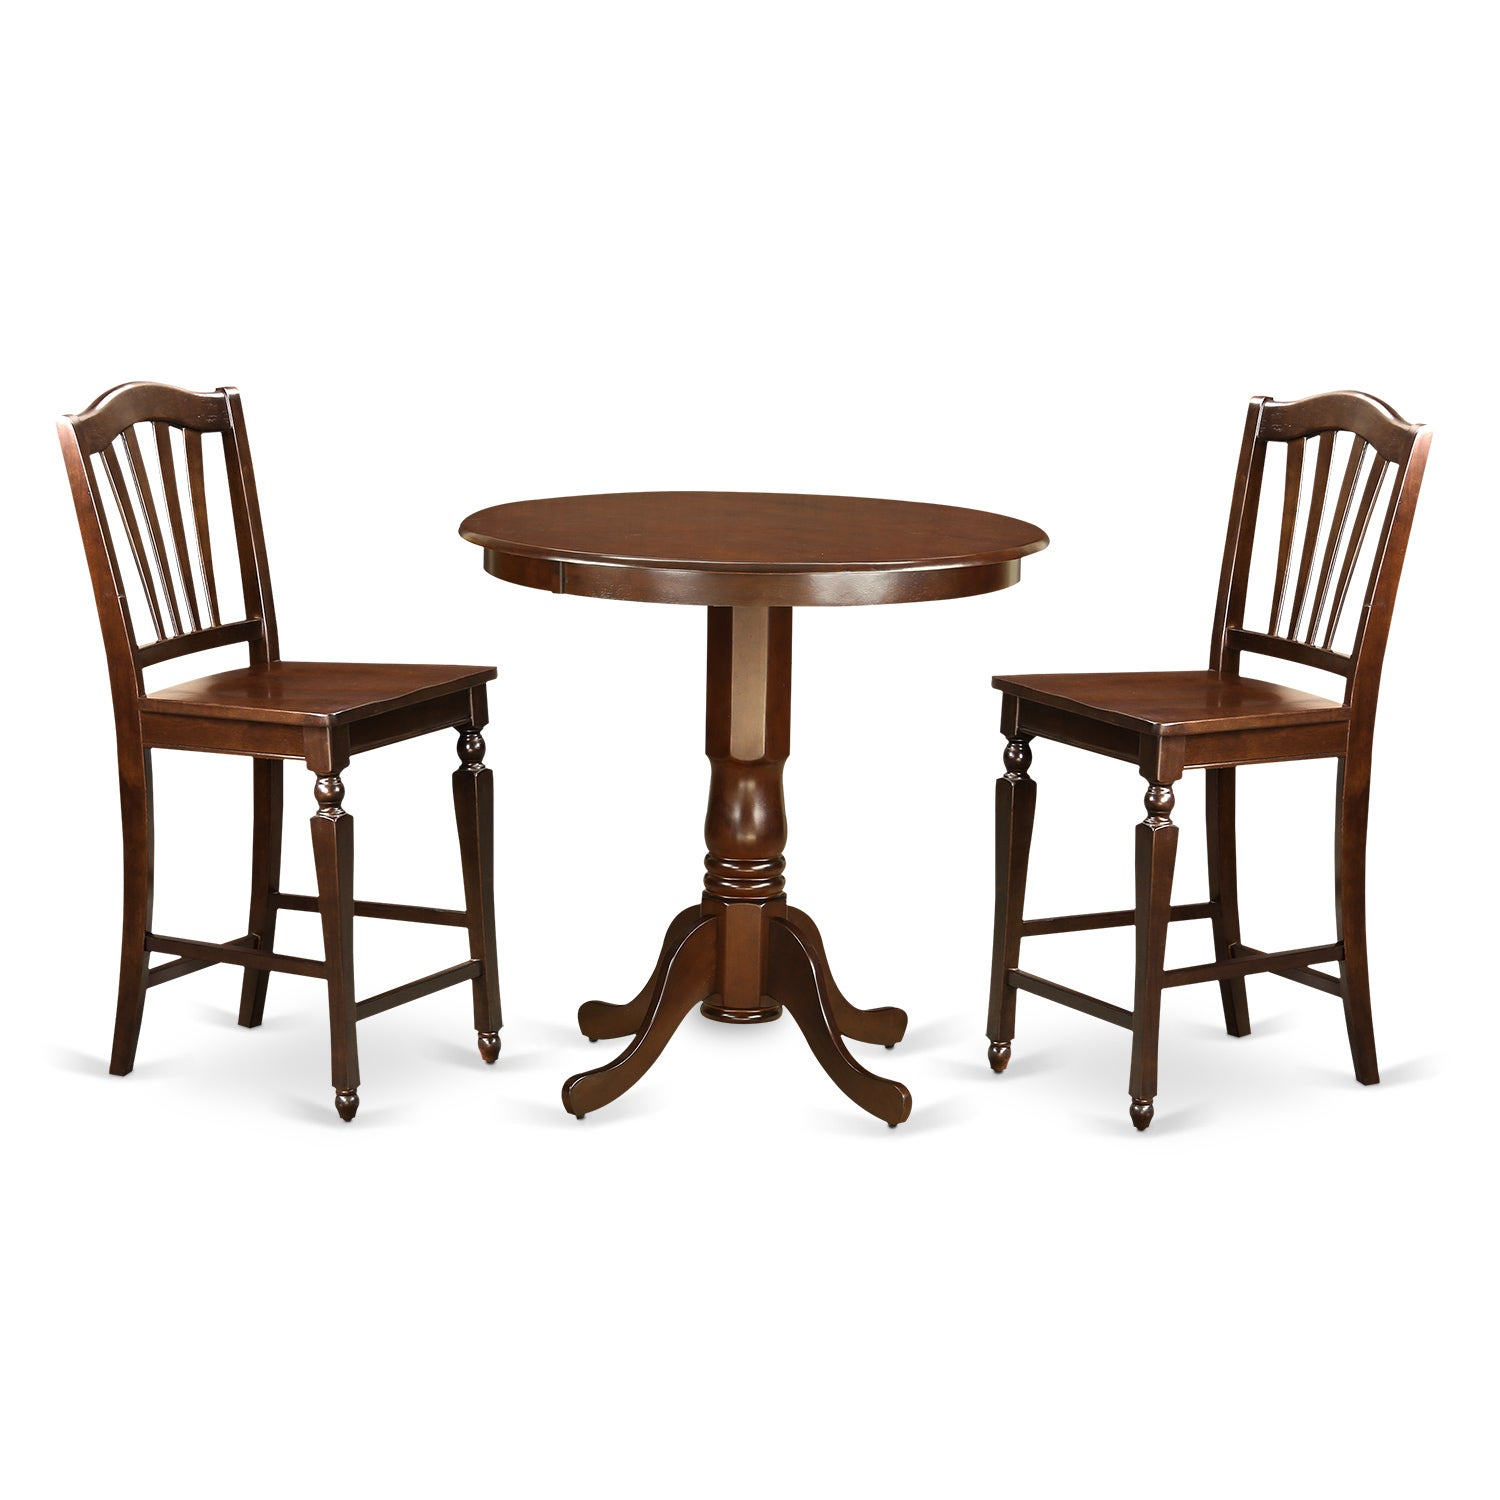 Mahogany Rubberwood 3-piece Counter-height Dining Set (Wo...